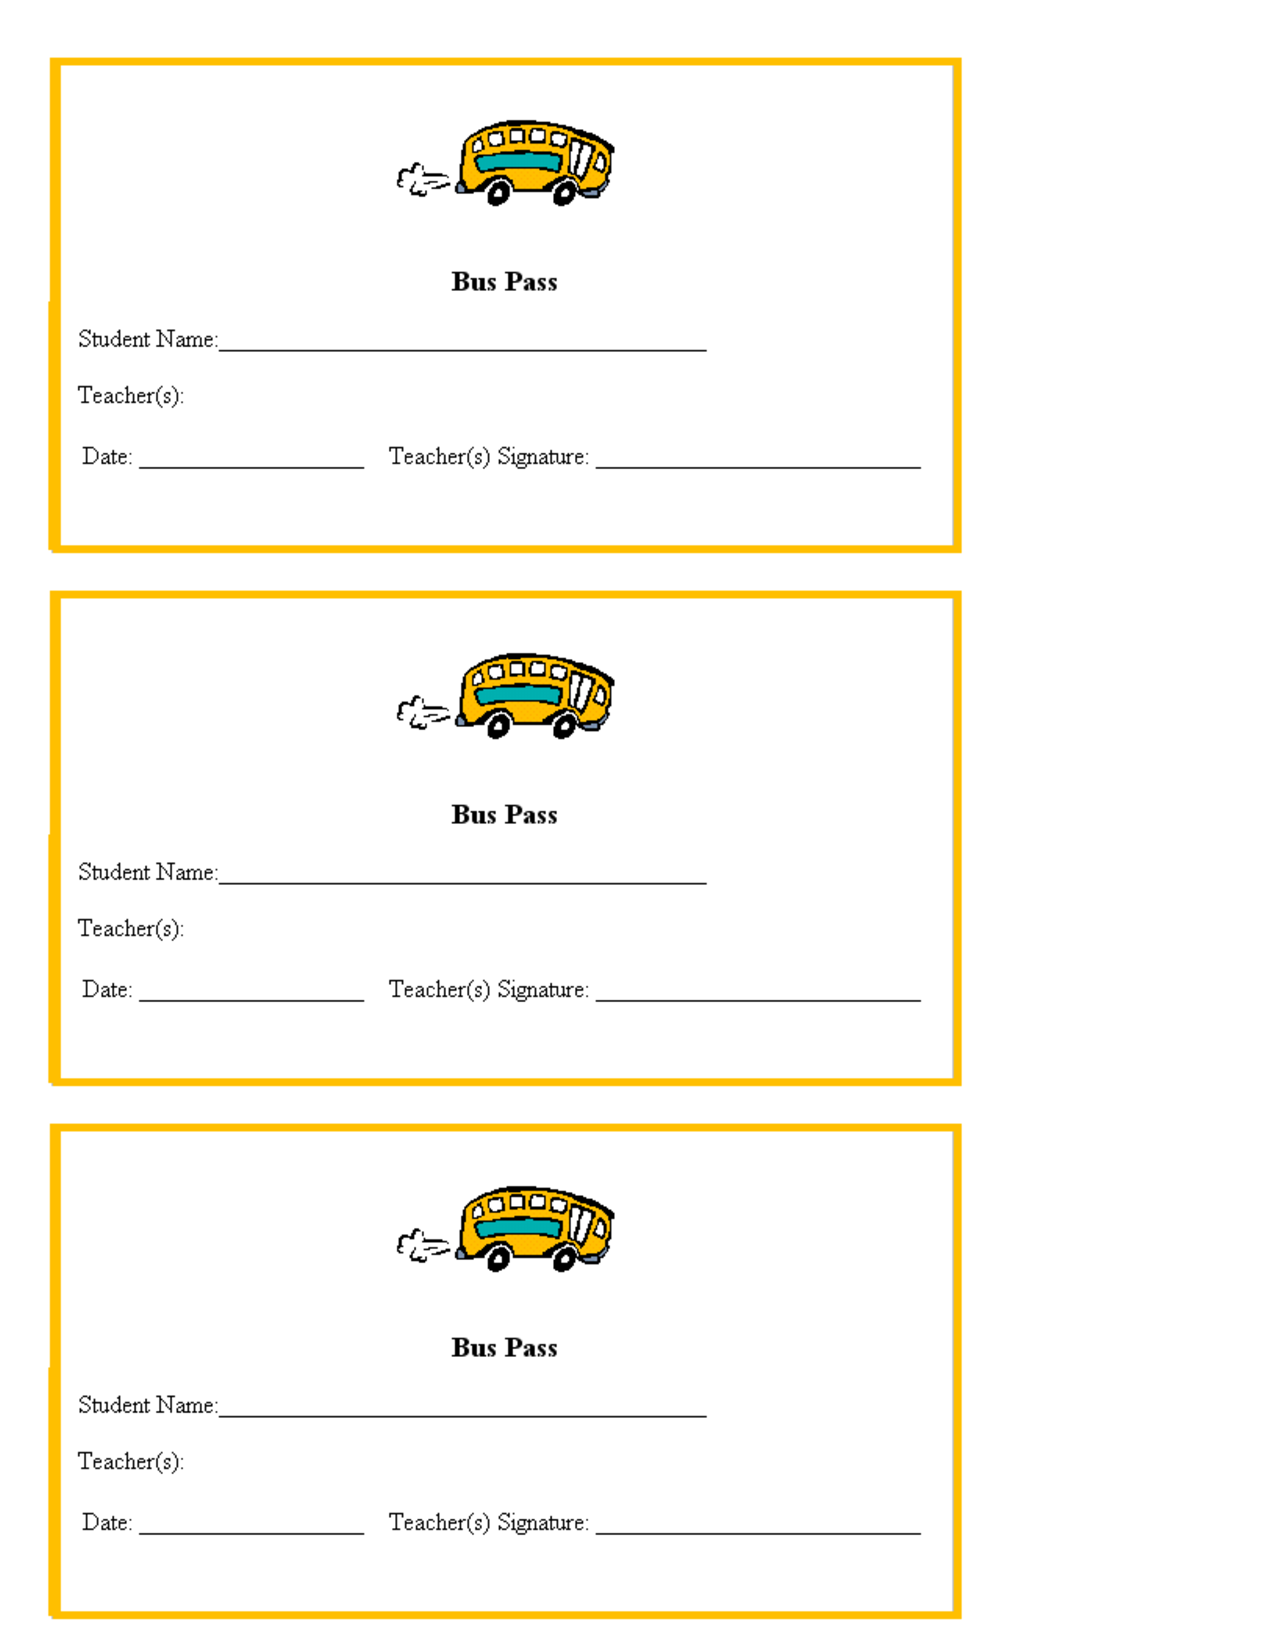 Teachers School Free Teacher Bus Ticket Pass Printables Passes Hall Form Pass For Template